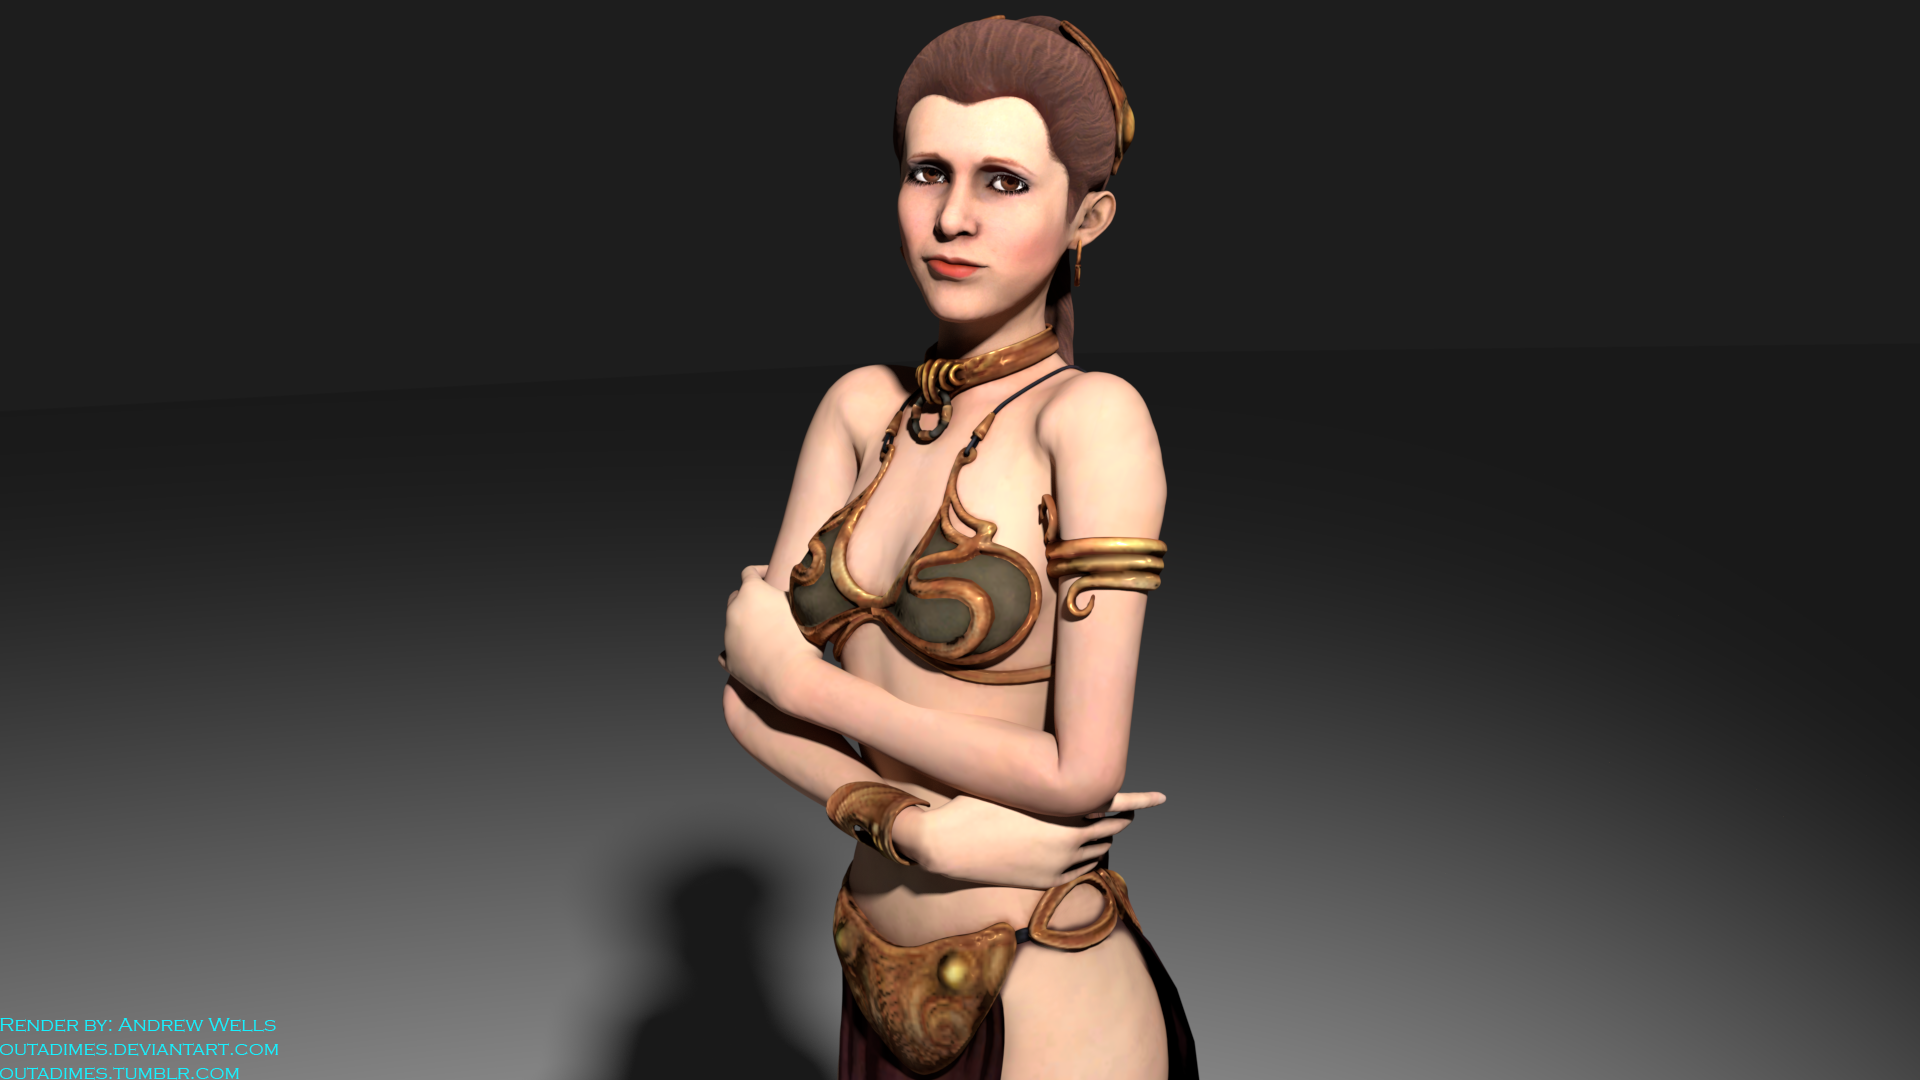 Slave leia for xpsxnalara by outadimes on deviantart slave leia for xpsxnalara by outadimes ccuart Gallery